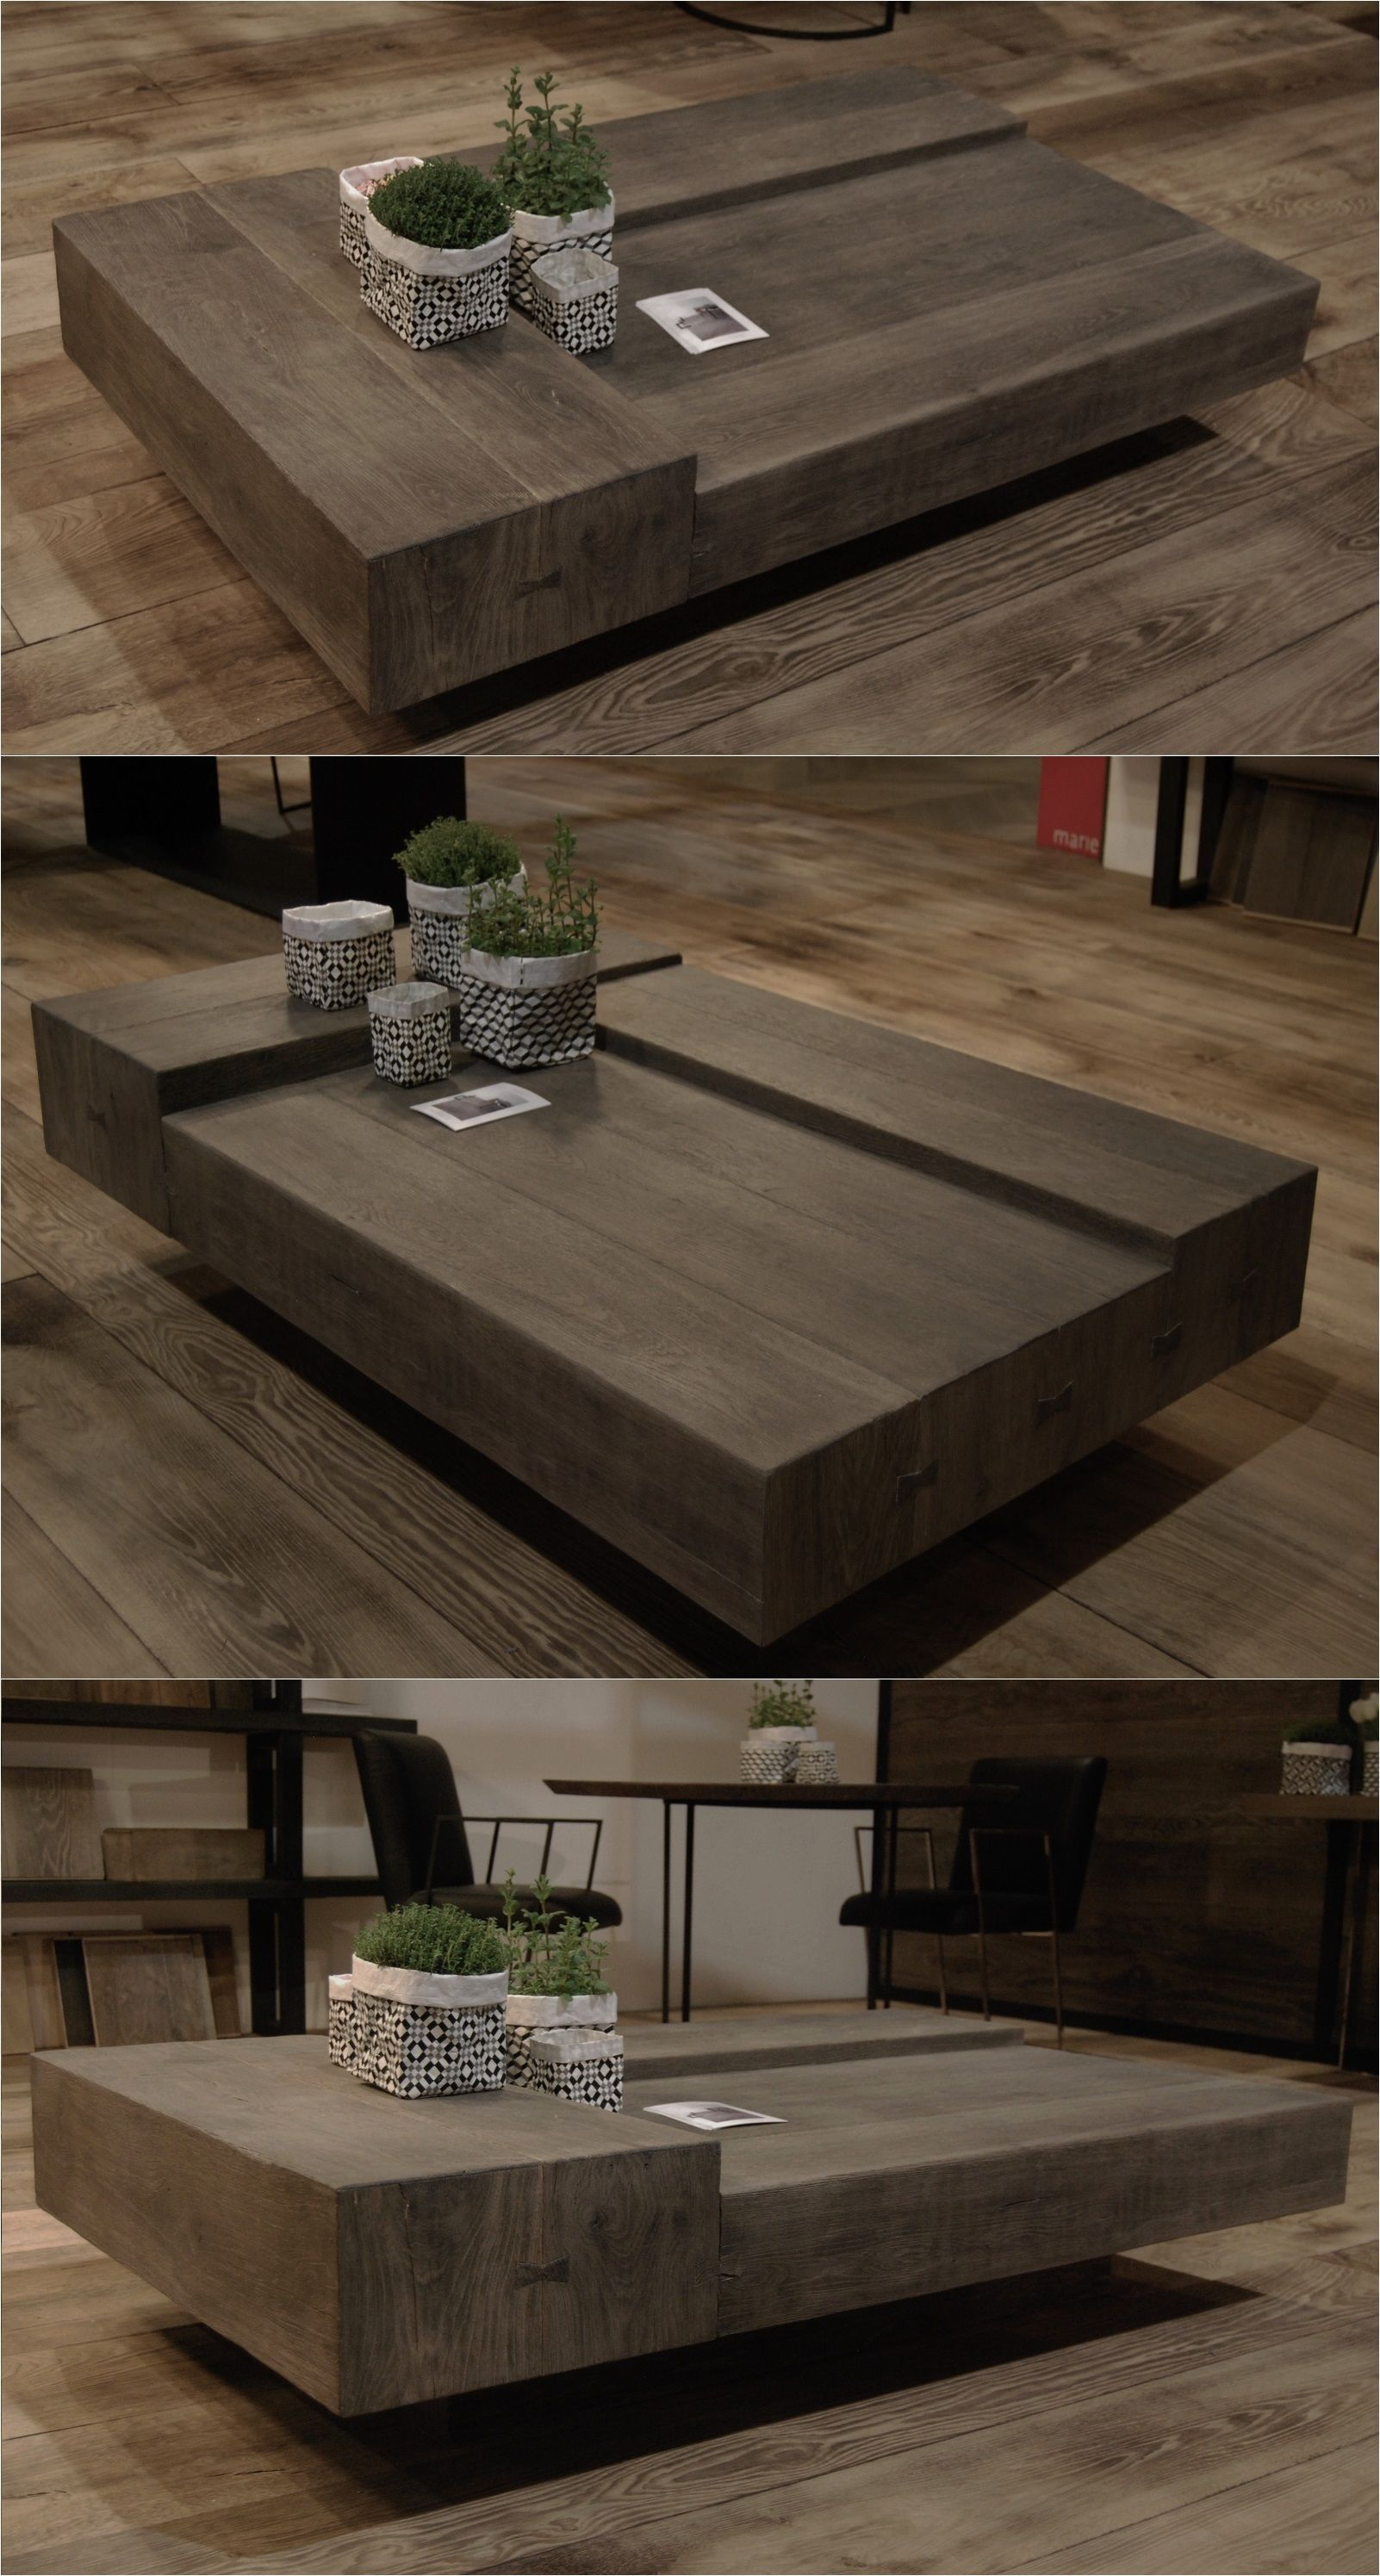 Triple Wooden Handmade Low Rectangular Coffee Table By Didier Cabuy Coffee Table Inspiration Coffee Table Square Coffee Table Wood